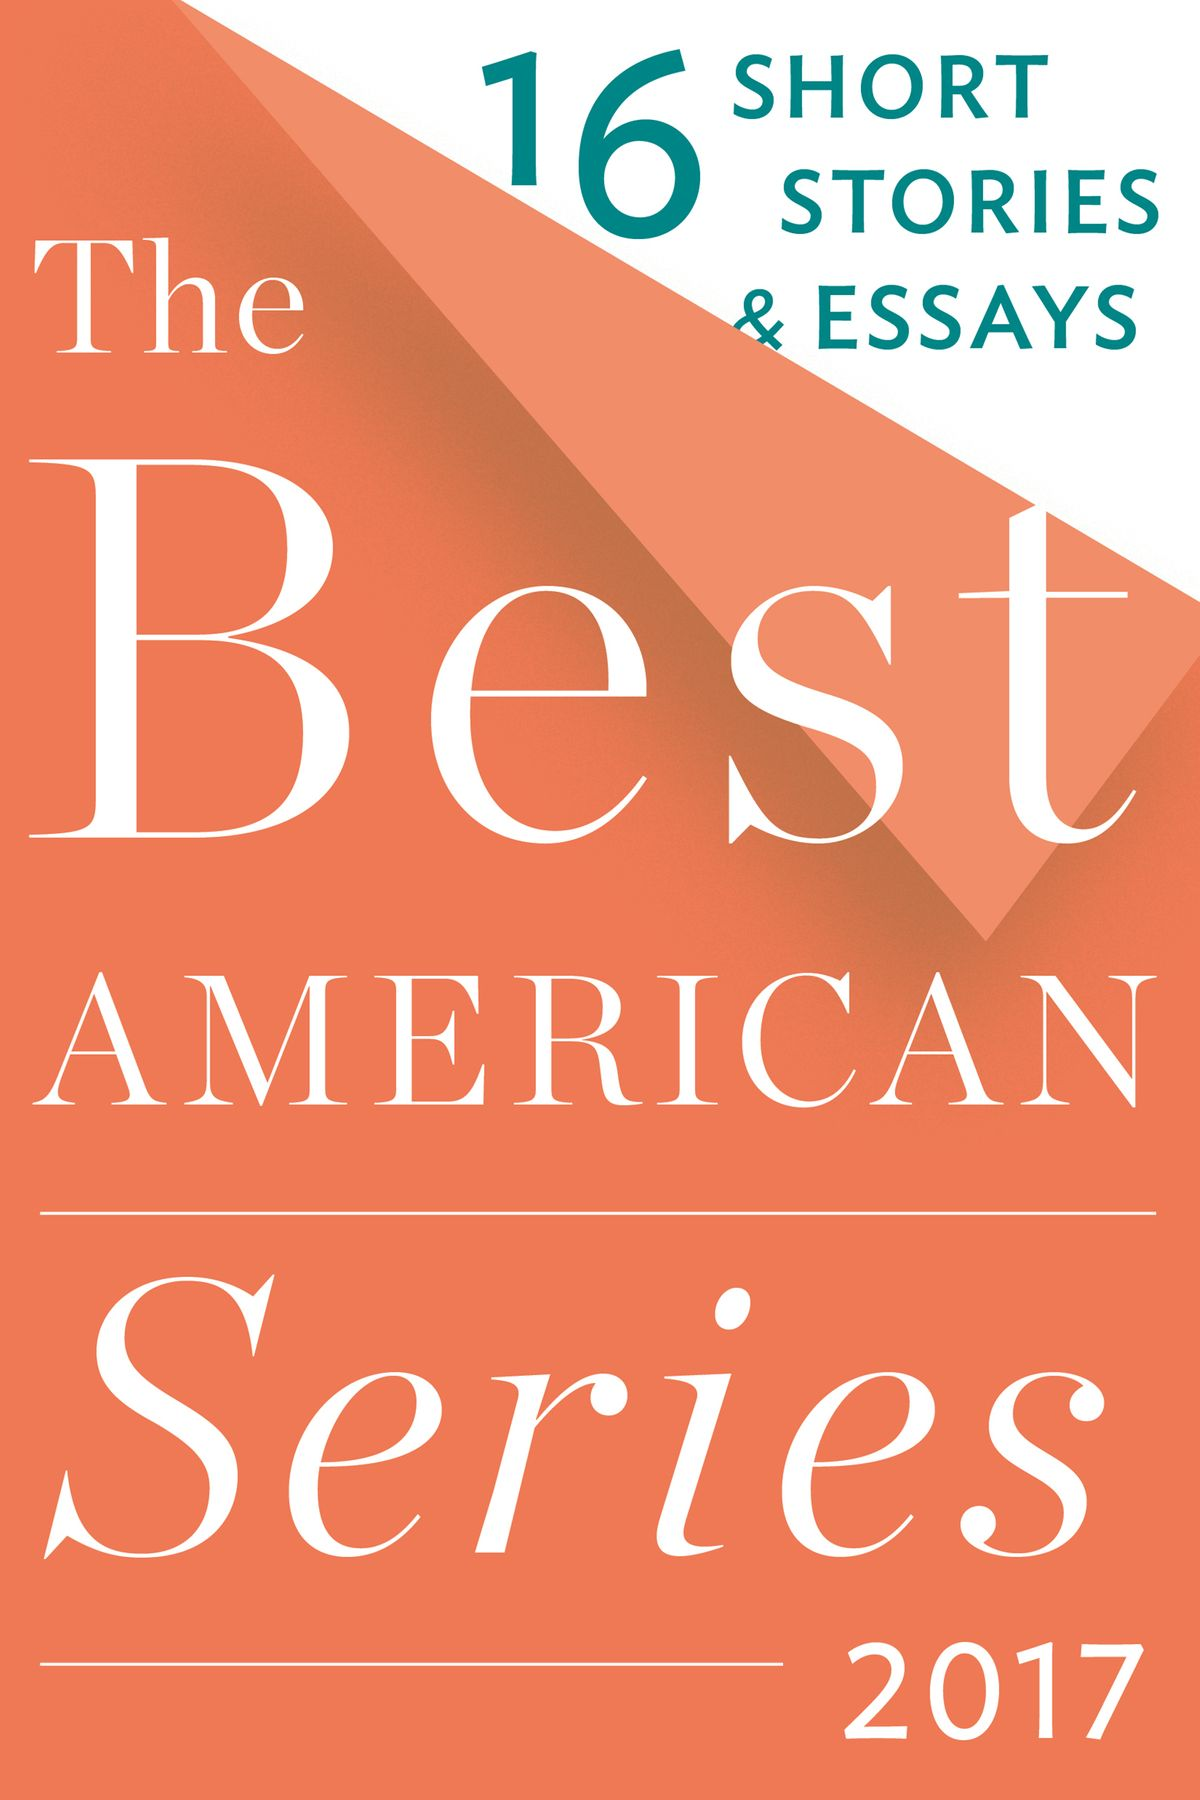 008 The Best American Series Essays Essay Astounding 2017 Submissions Pdf Free Download Full